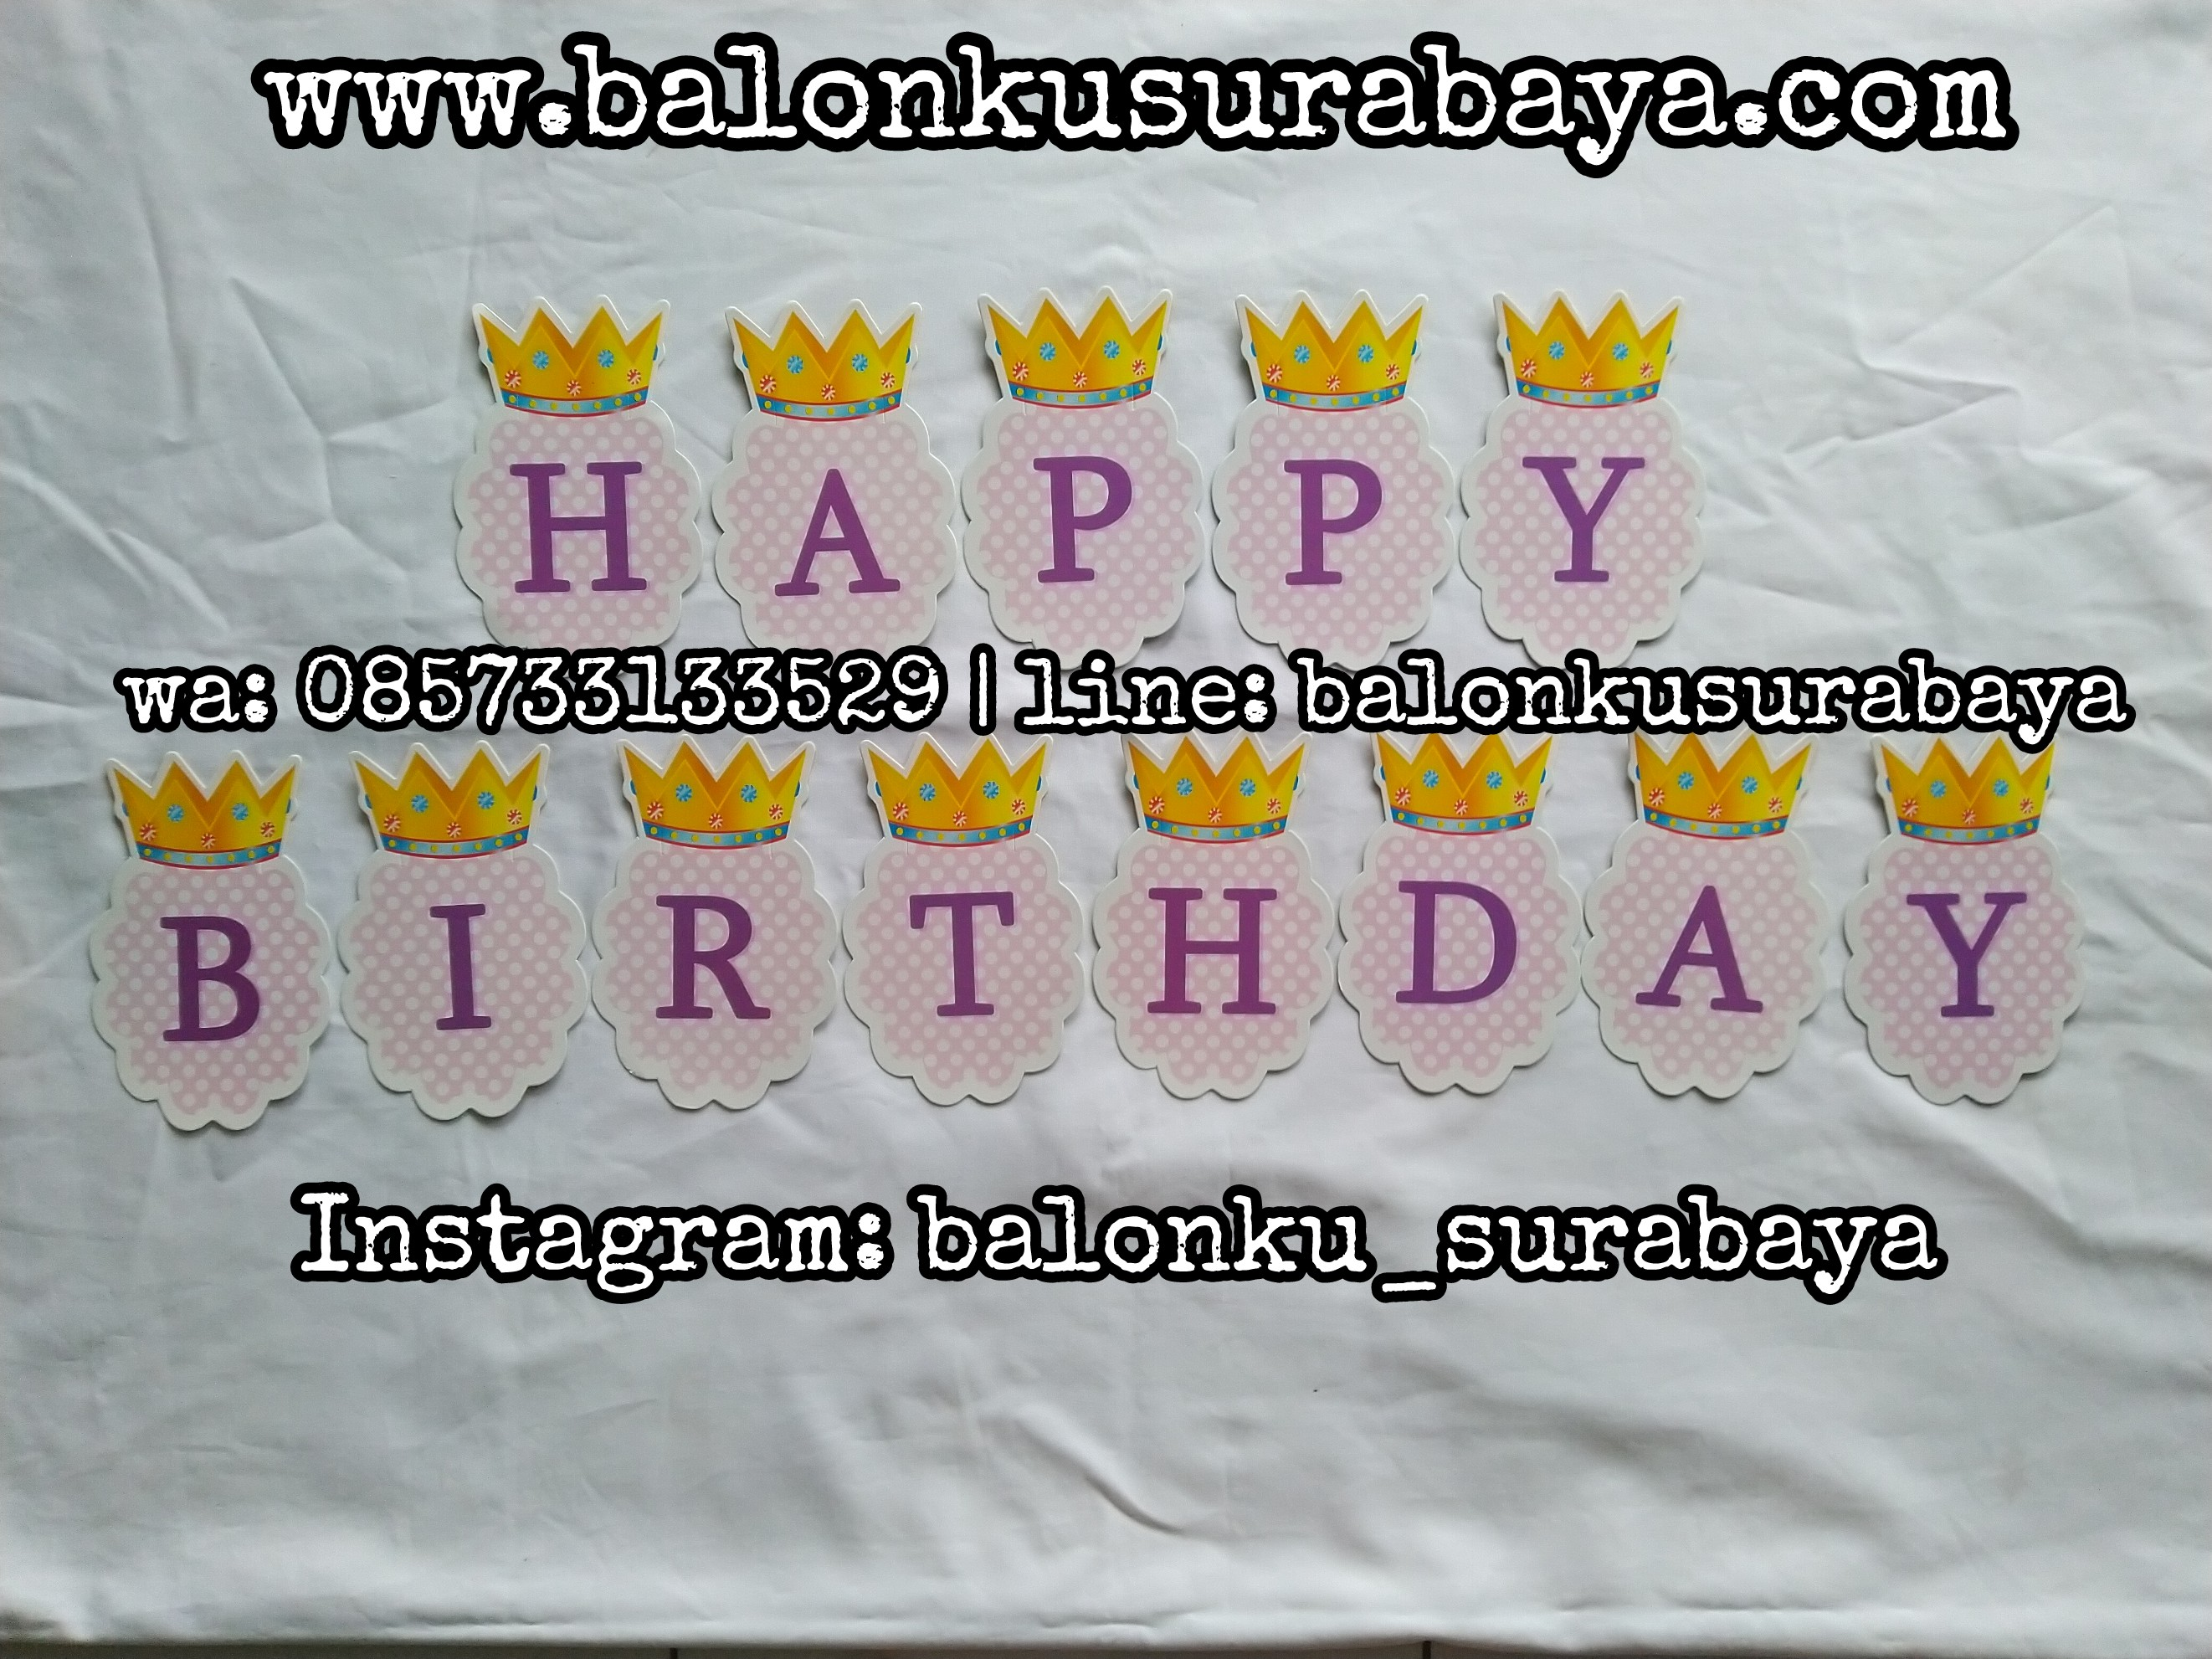 085733133529, falg banner happy birthday, bunting flag happy birthday, tulisan dinding happy birthday, ulang tahun anak, balon tepuk, balon sablon, balon custom